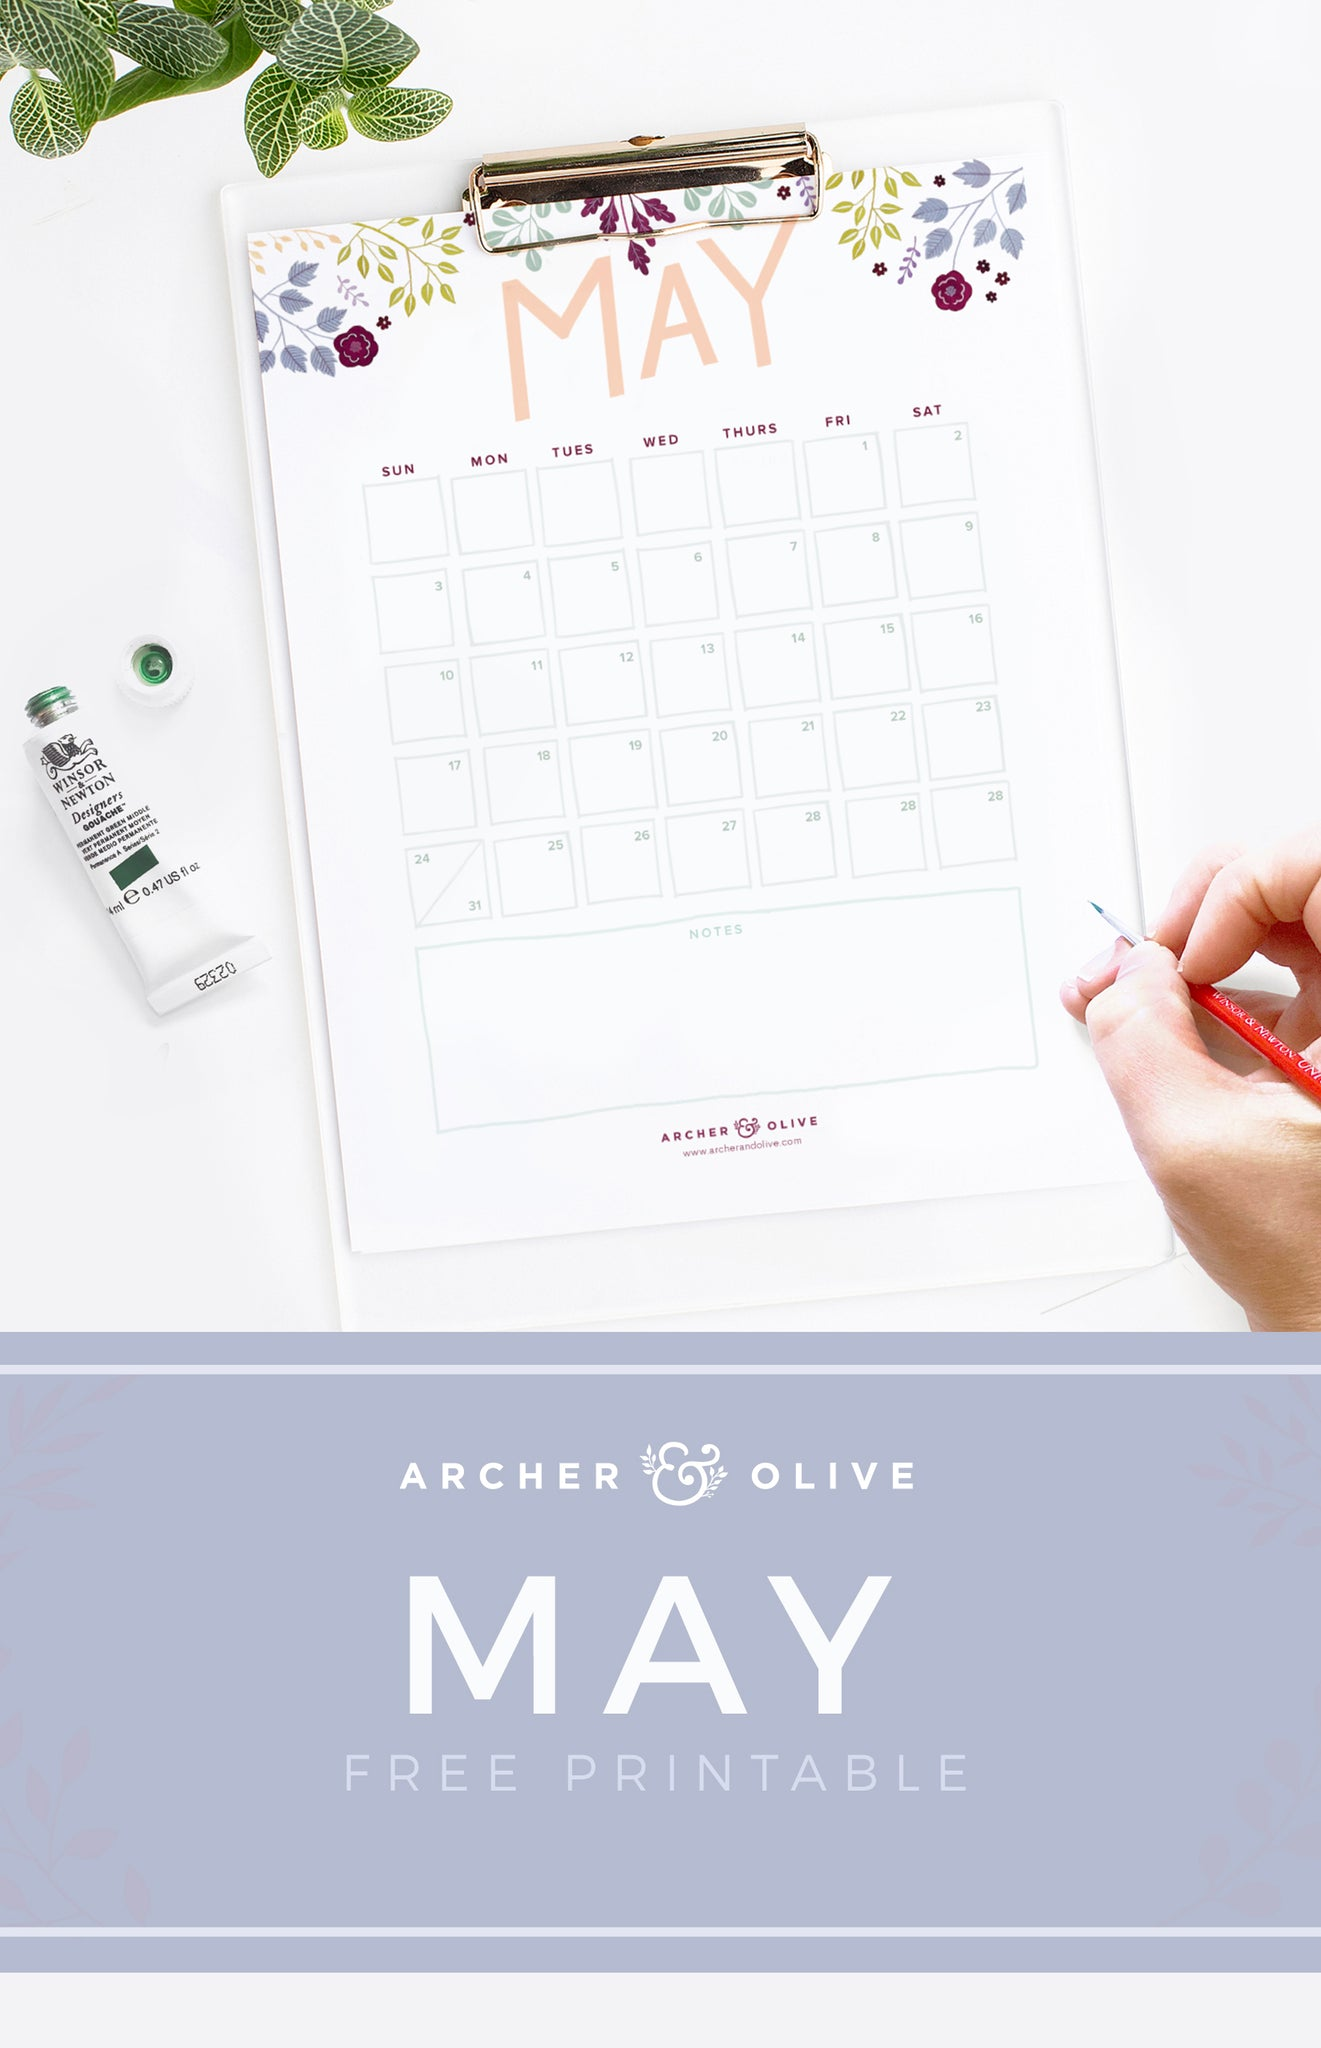 Archer and Olive May Calendar Printable